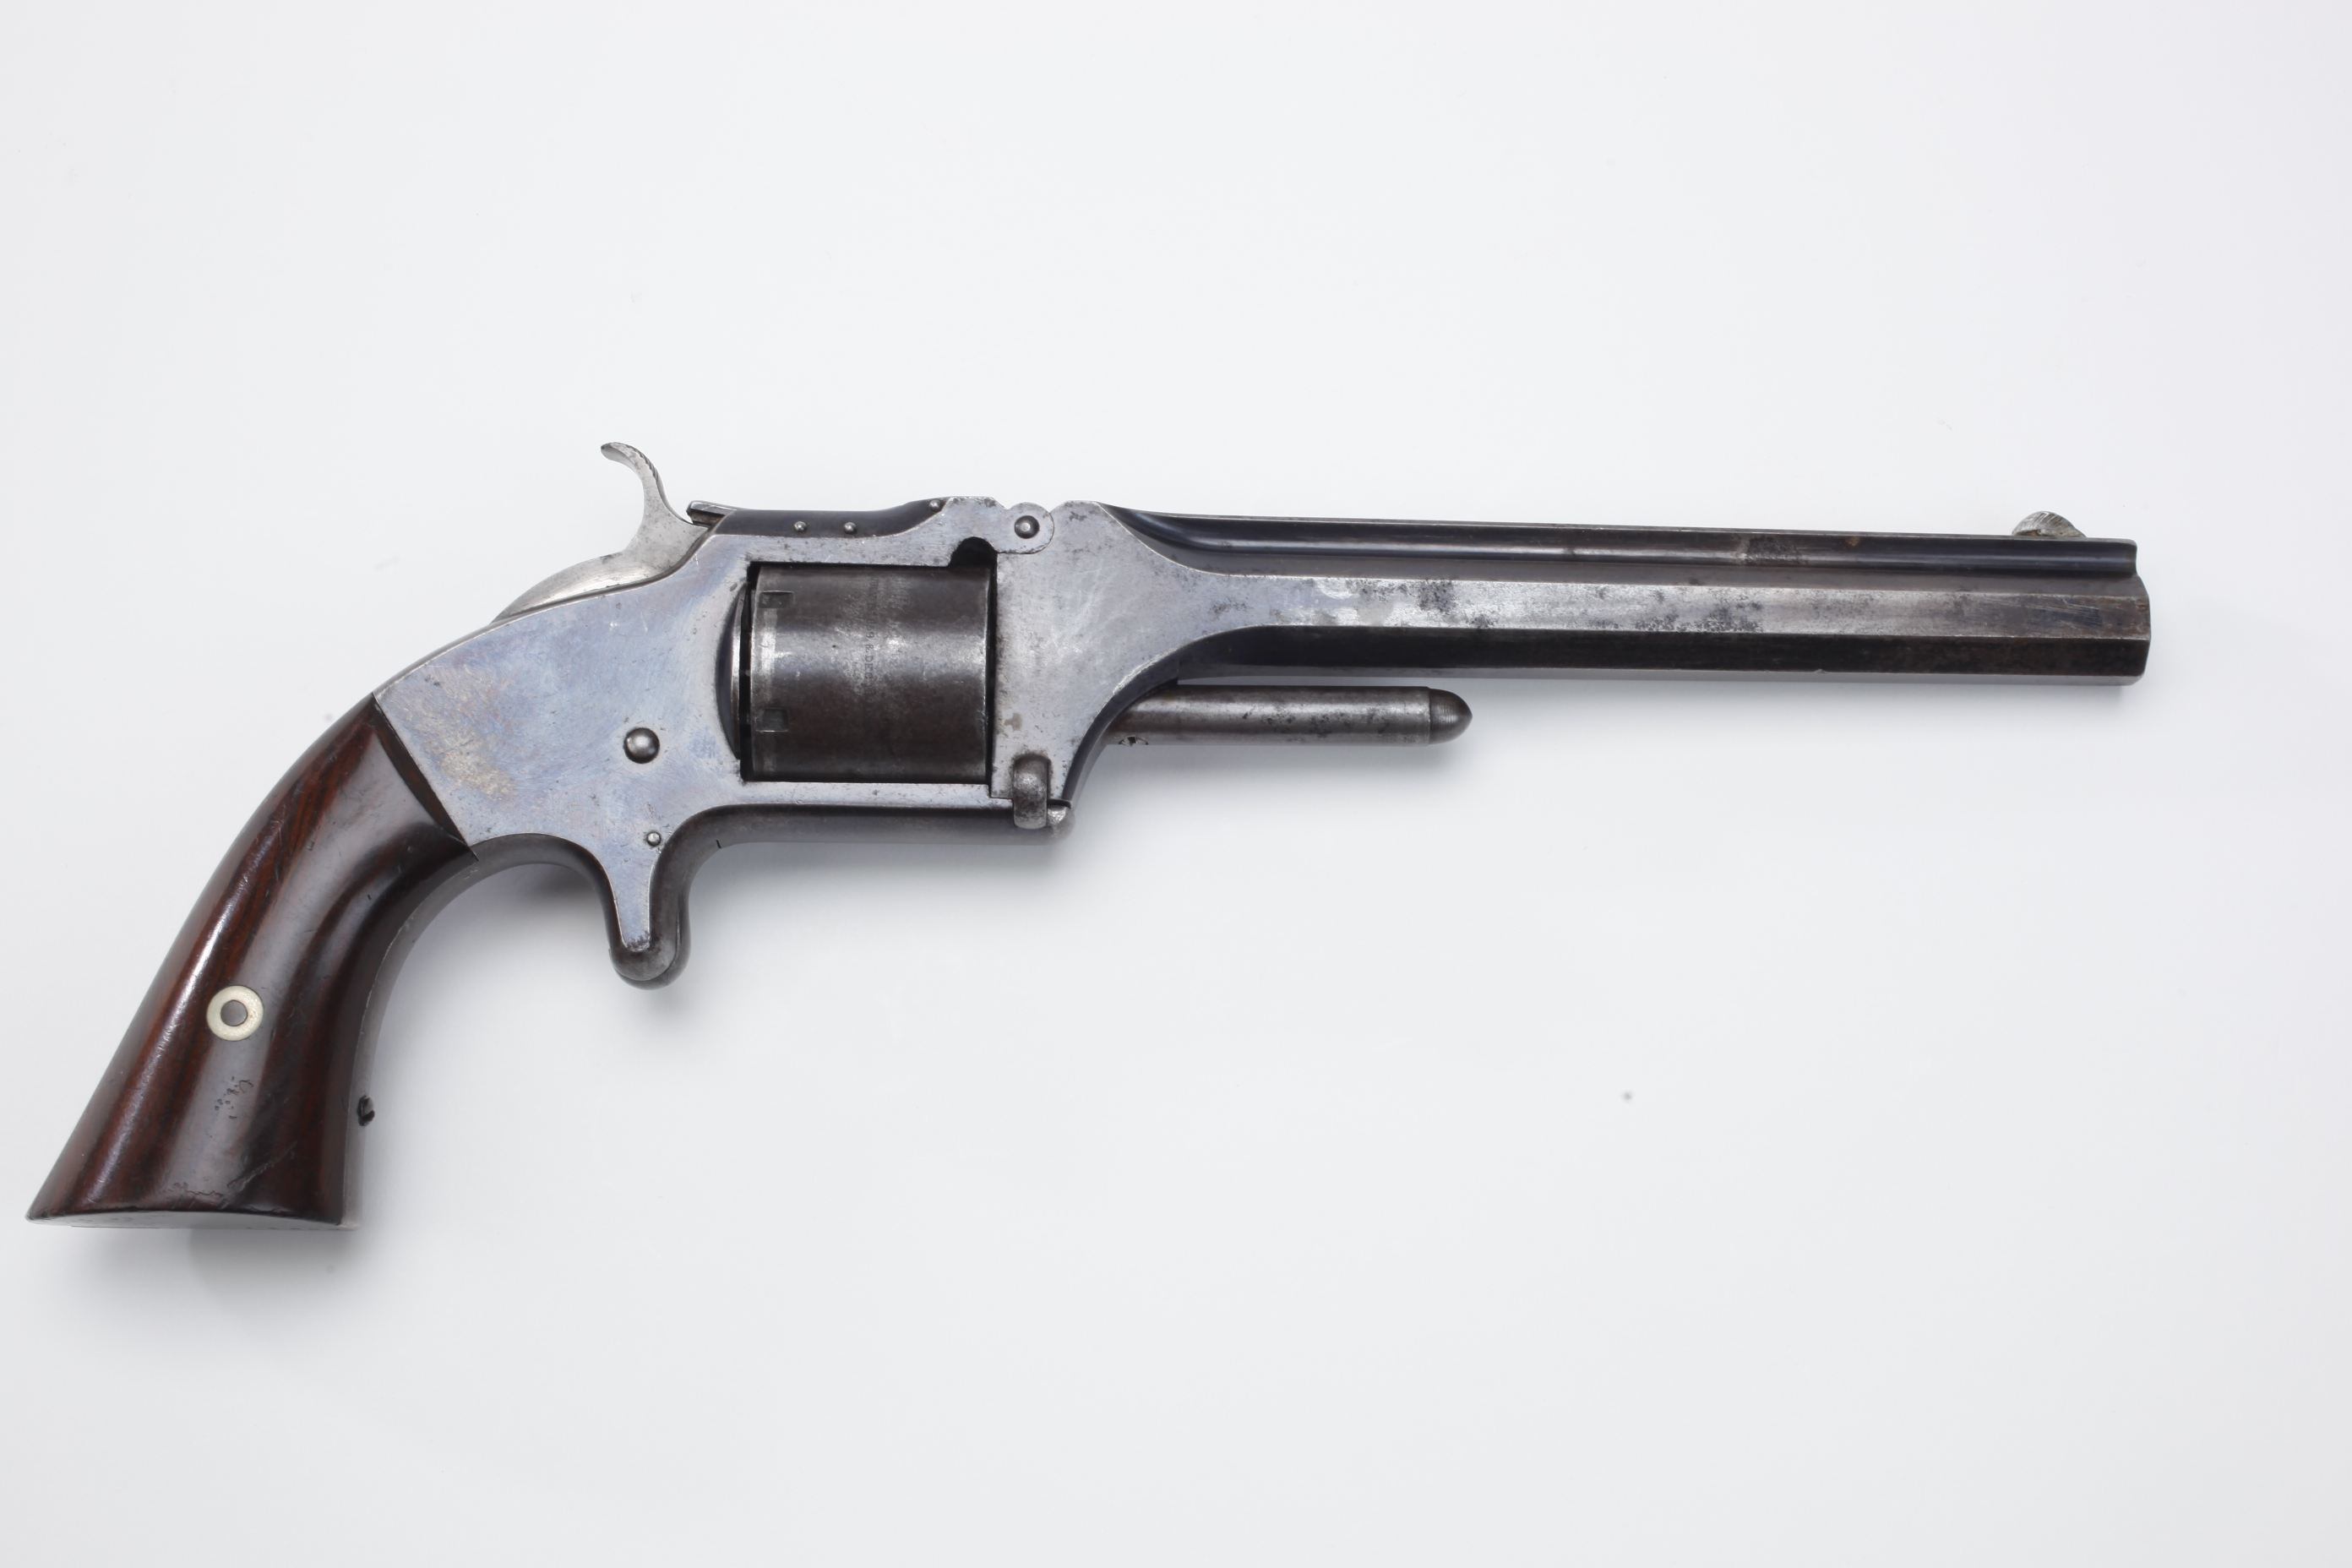 Smith & Wesson Model No 2 Army revolver